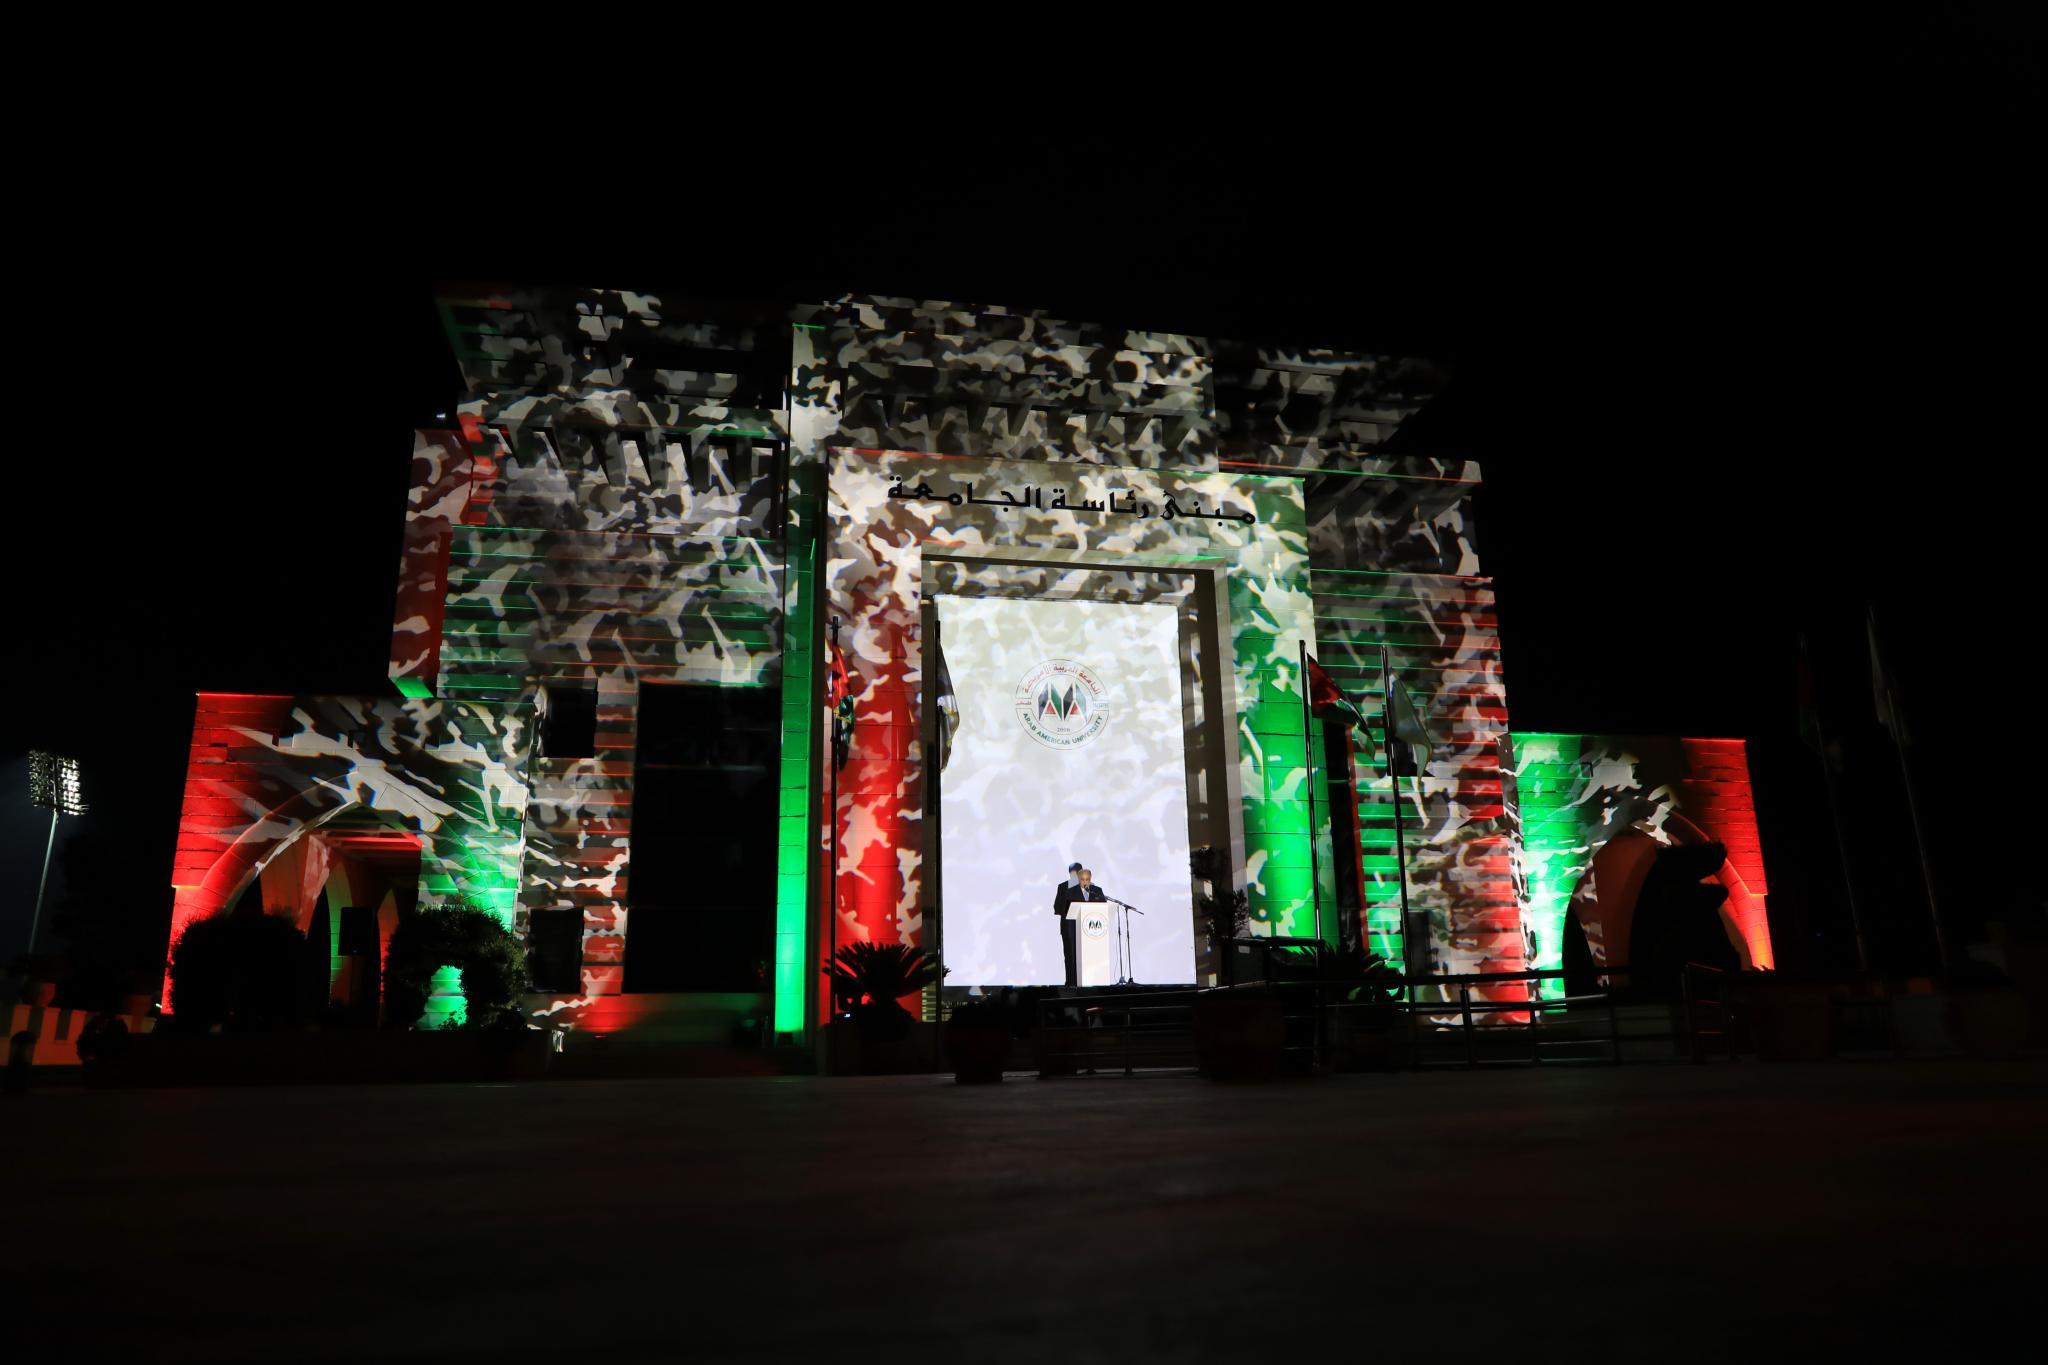 Lighting the Presidency Building in Jenin in the 20th anniversary ceremony